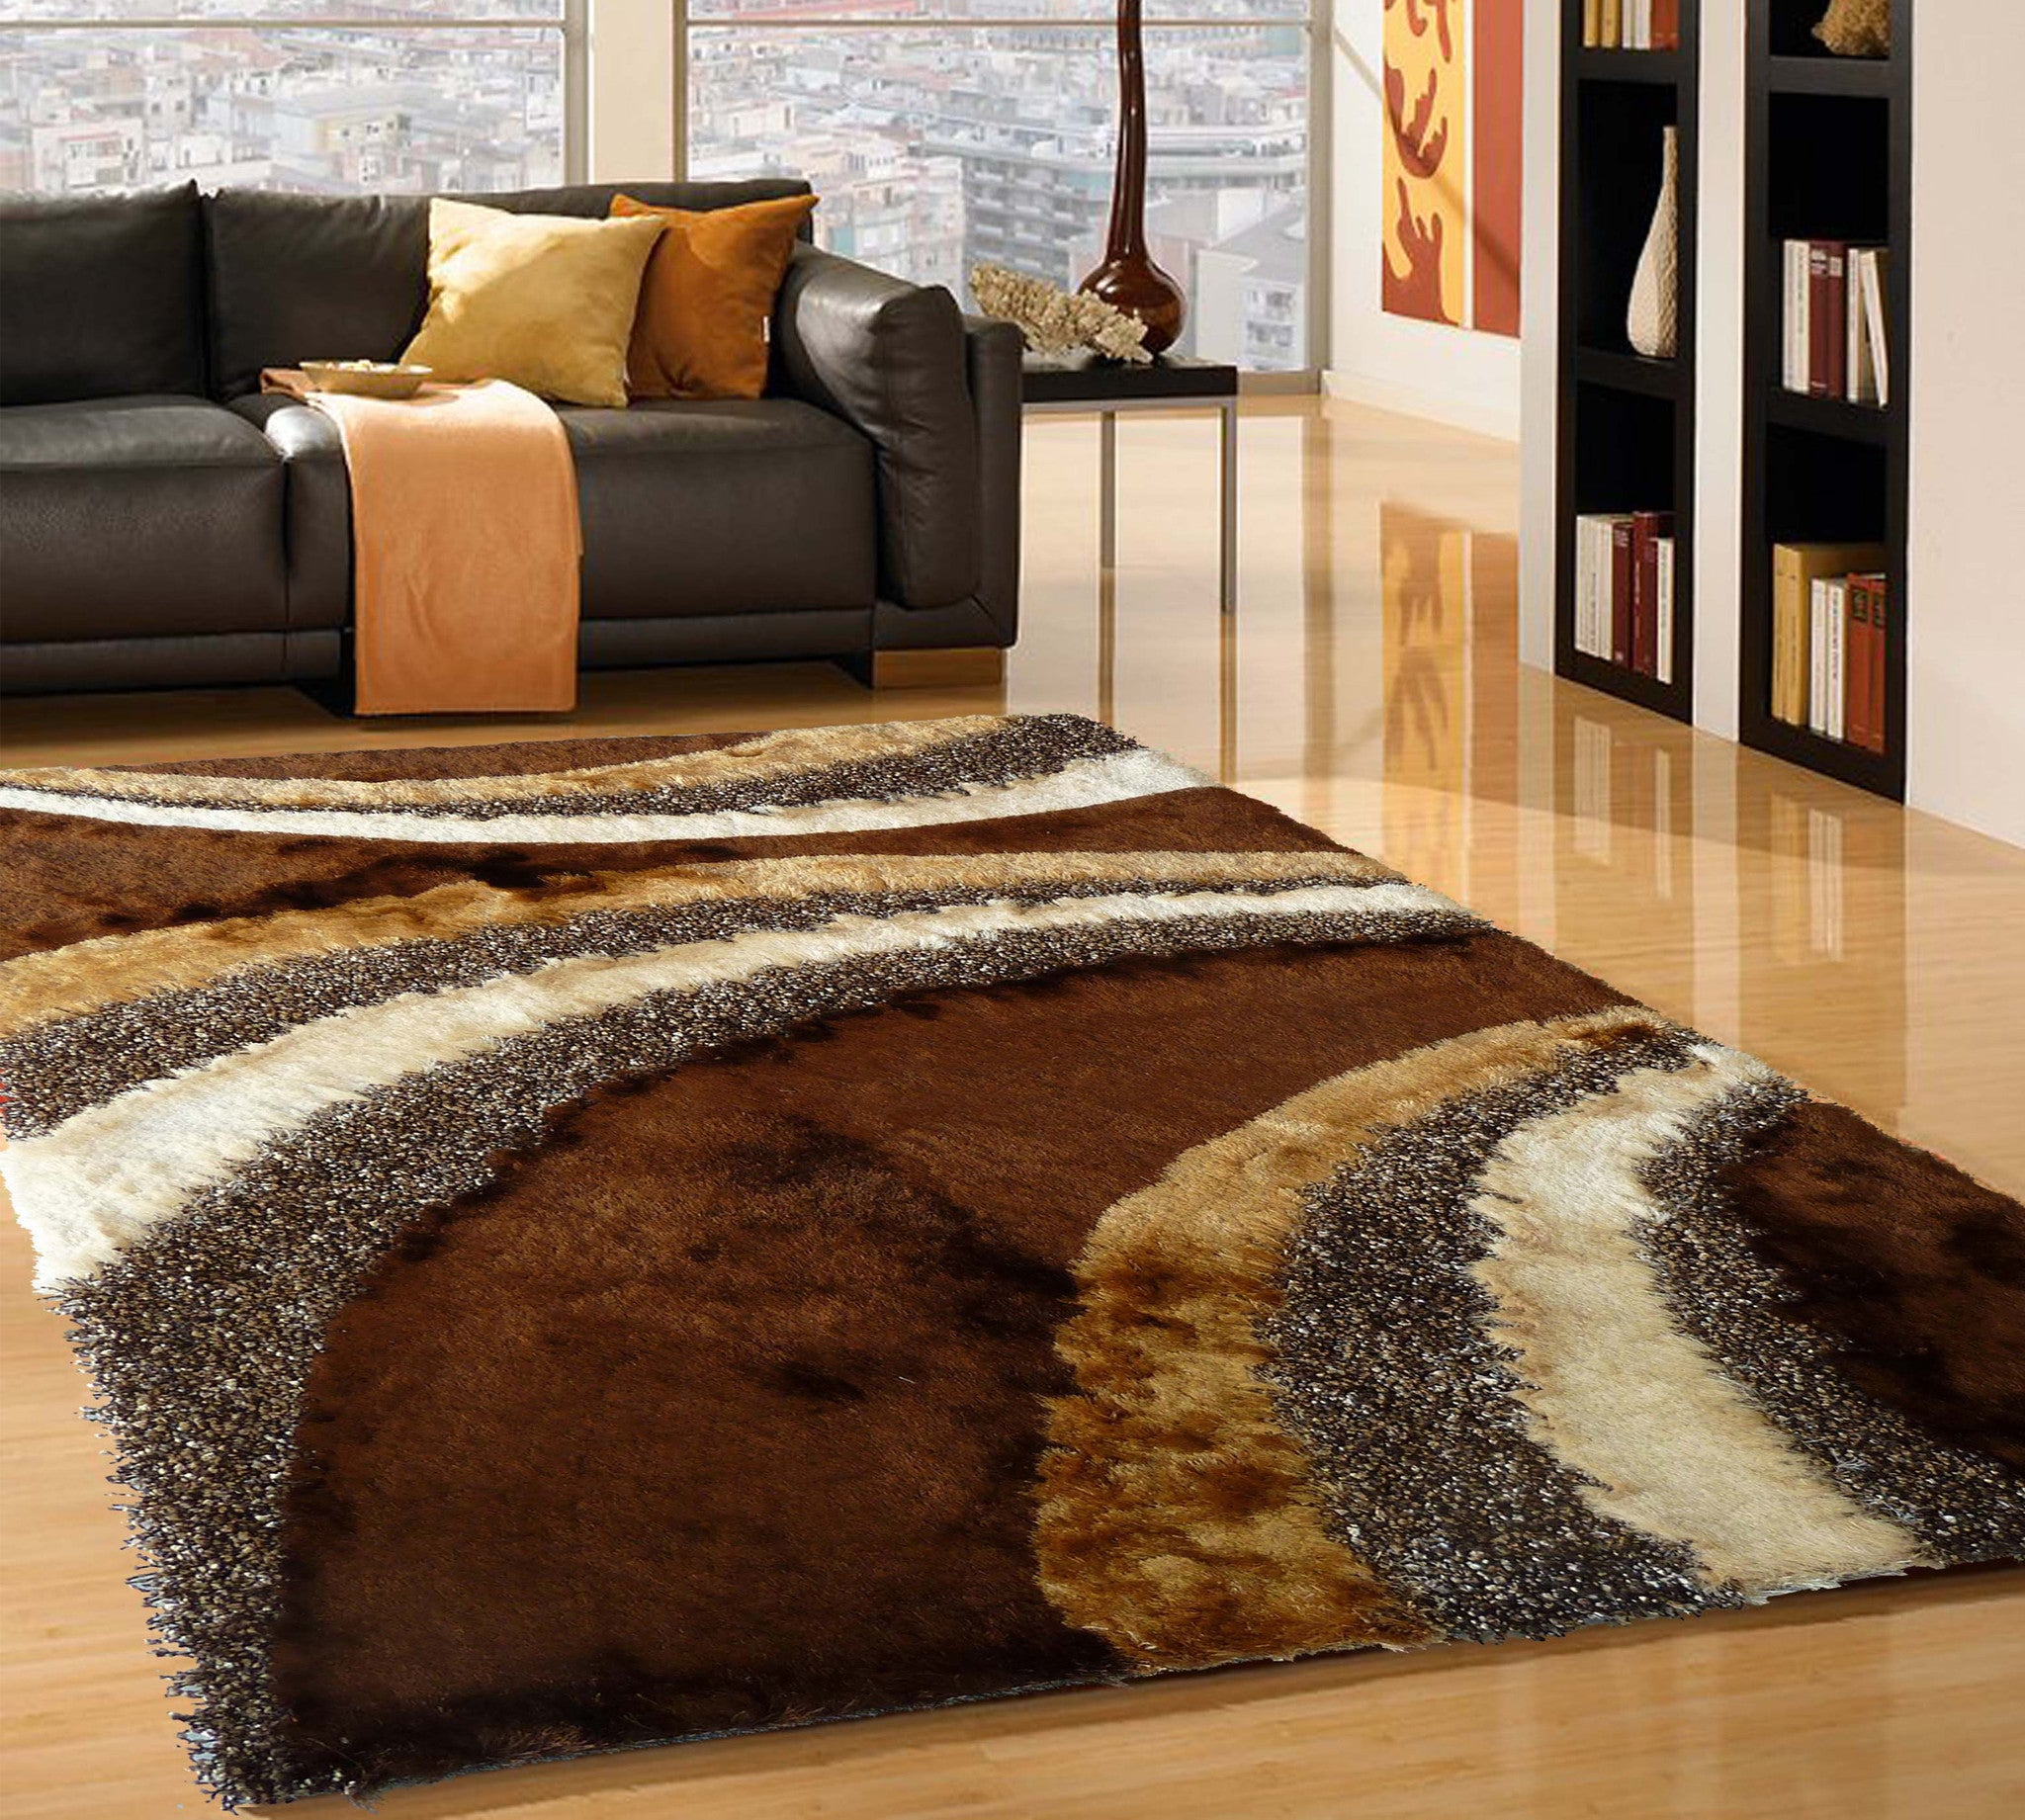 Shaggy Rugs For Living Room Brown Shag Rugs Roselawnlutheran